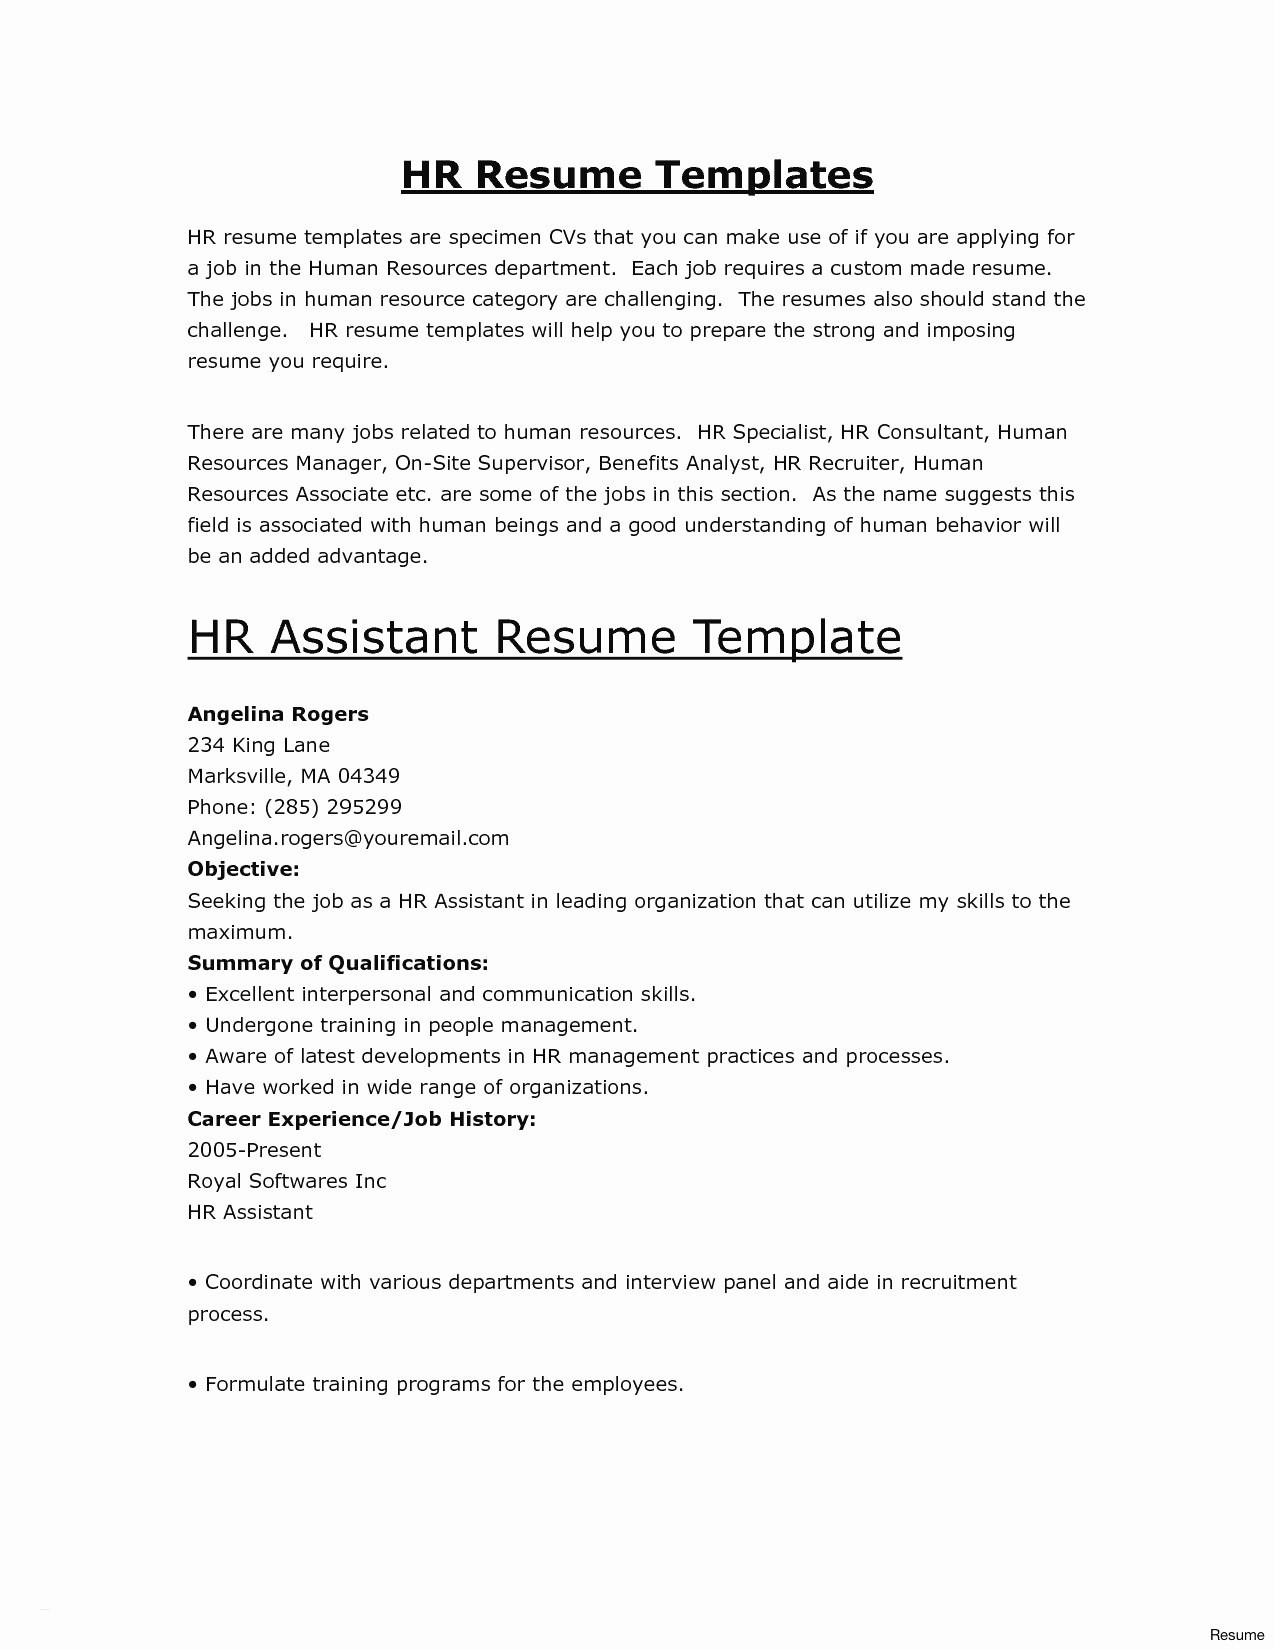 Word Resume Templates - Download Luxury Word 2013 Resume Templates